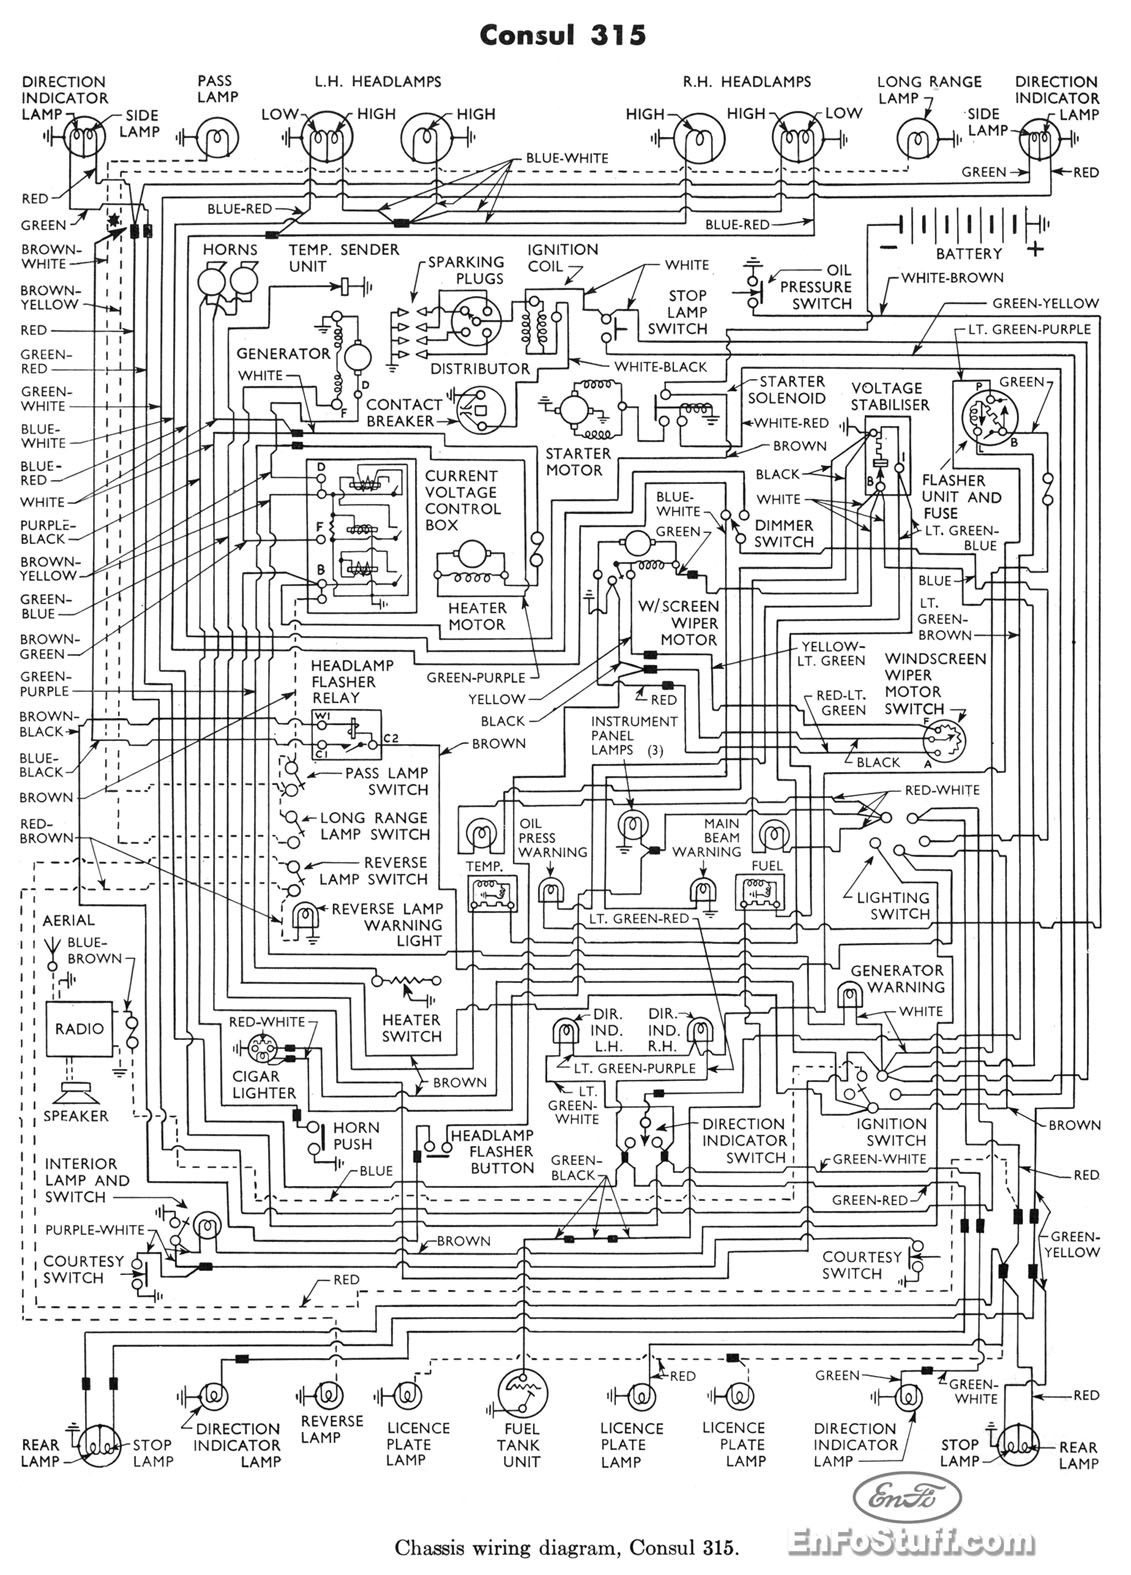 ford consul315 wiring diagram ford 7710 tractor wiring diagram ford discover your wiring ford 7740 wiring diagram at bayanpartner.co